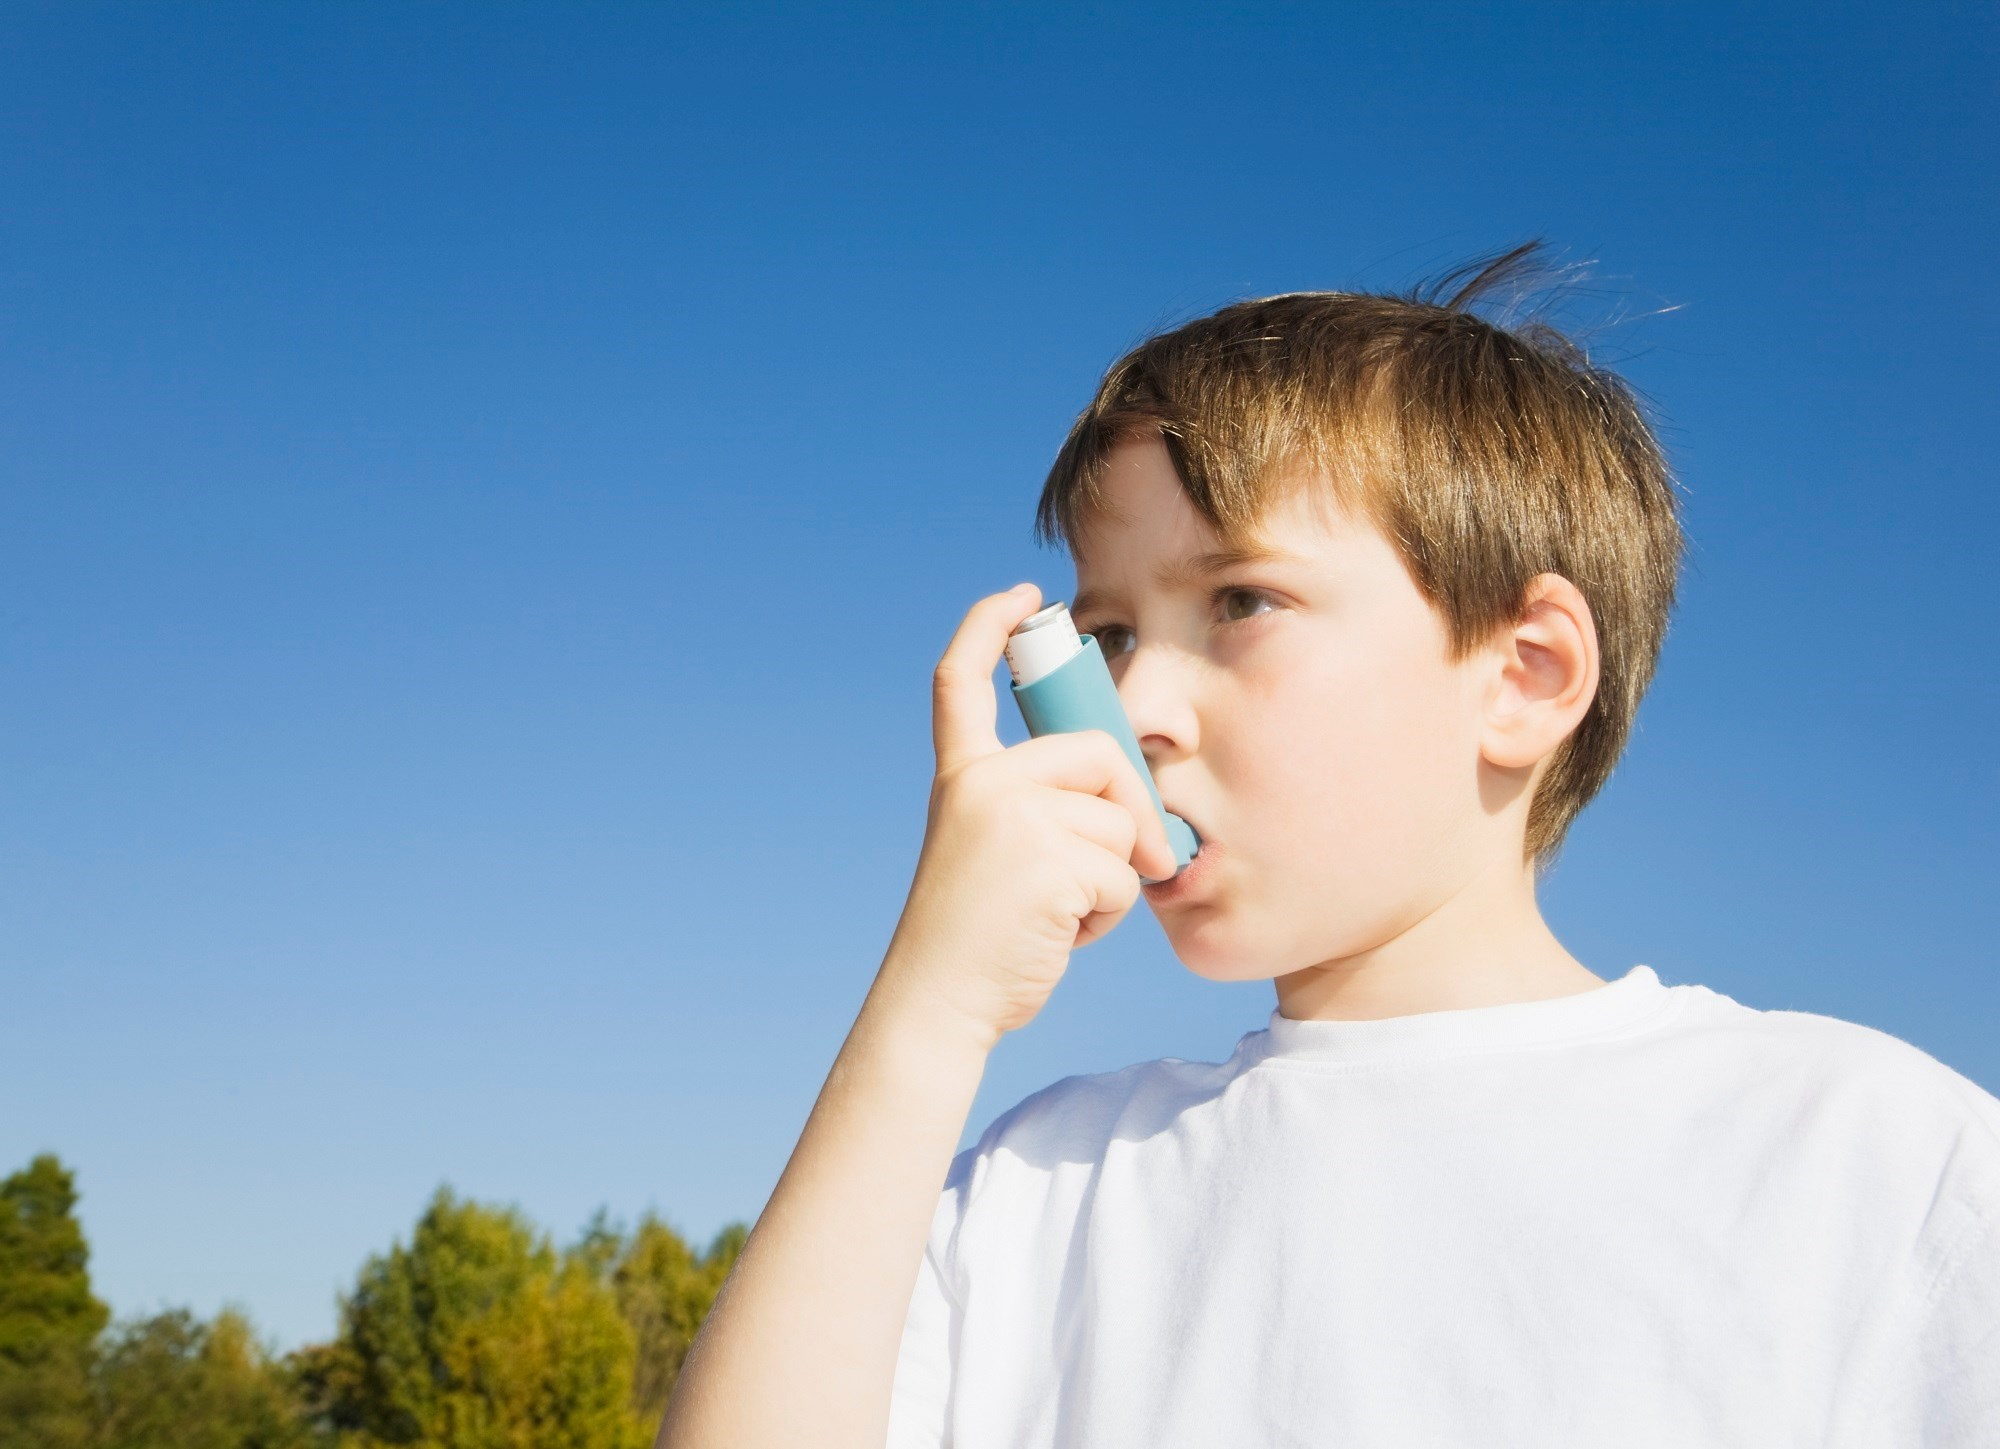 Small Airway Function in Children With Mild to Moderate Asthma